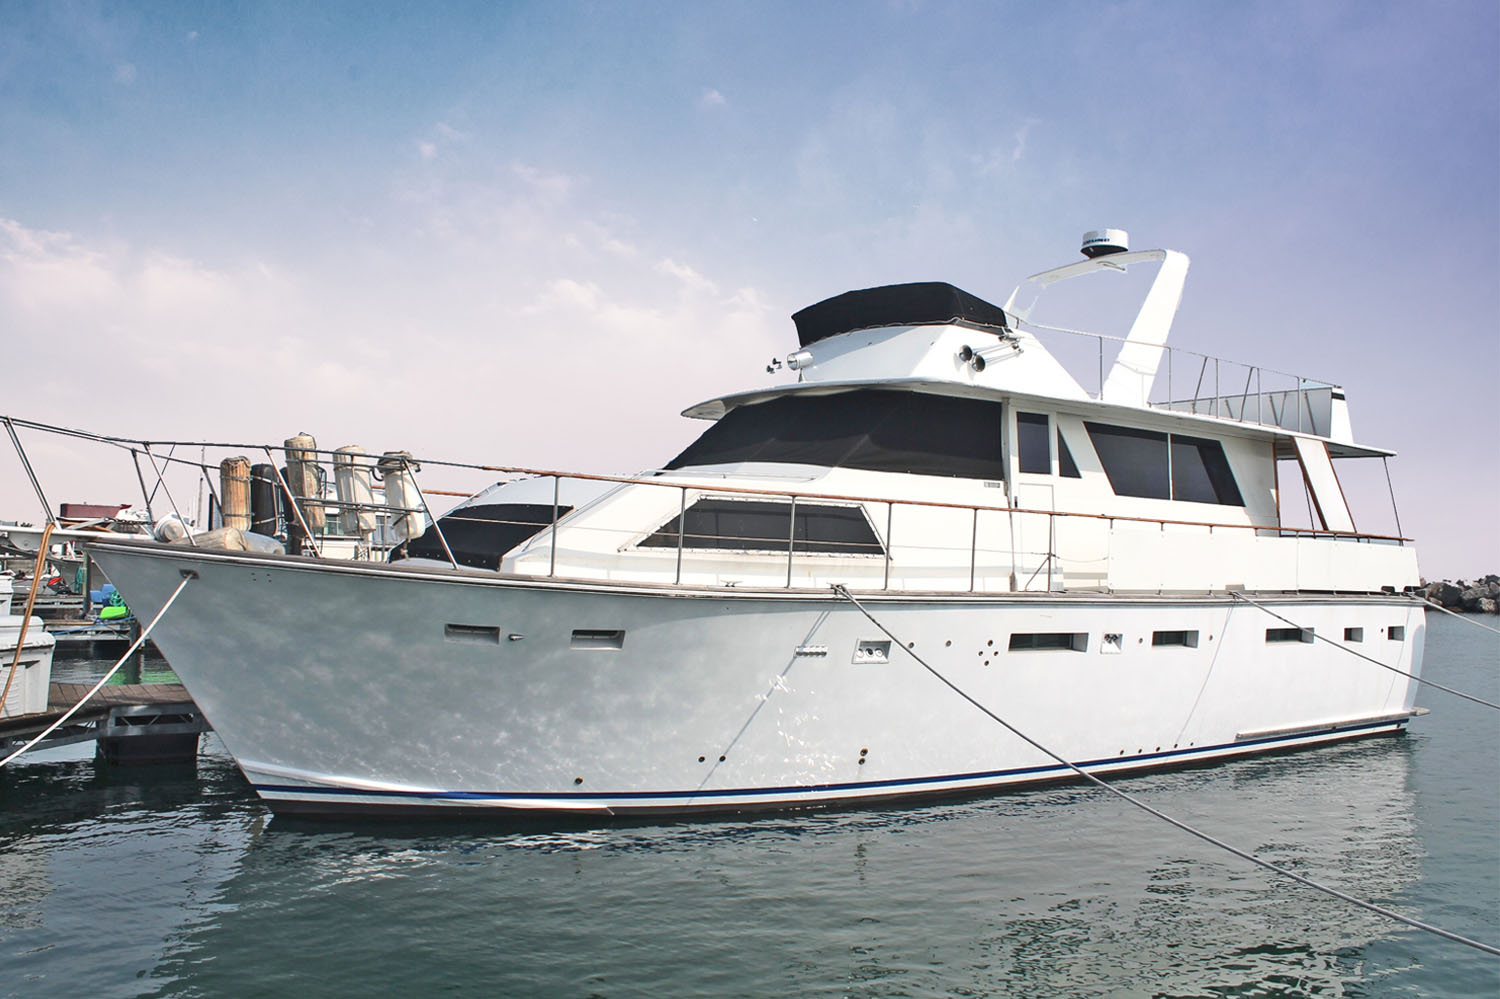 53' Trojan Deckhouse Motor Yacht for sale in Chicago